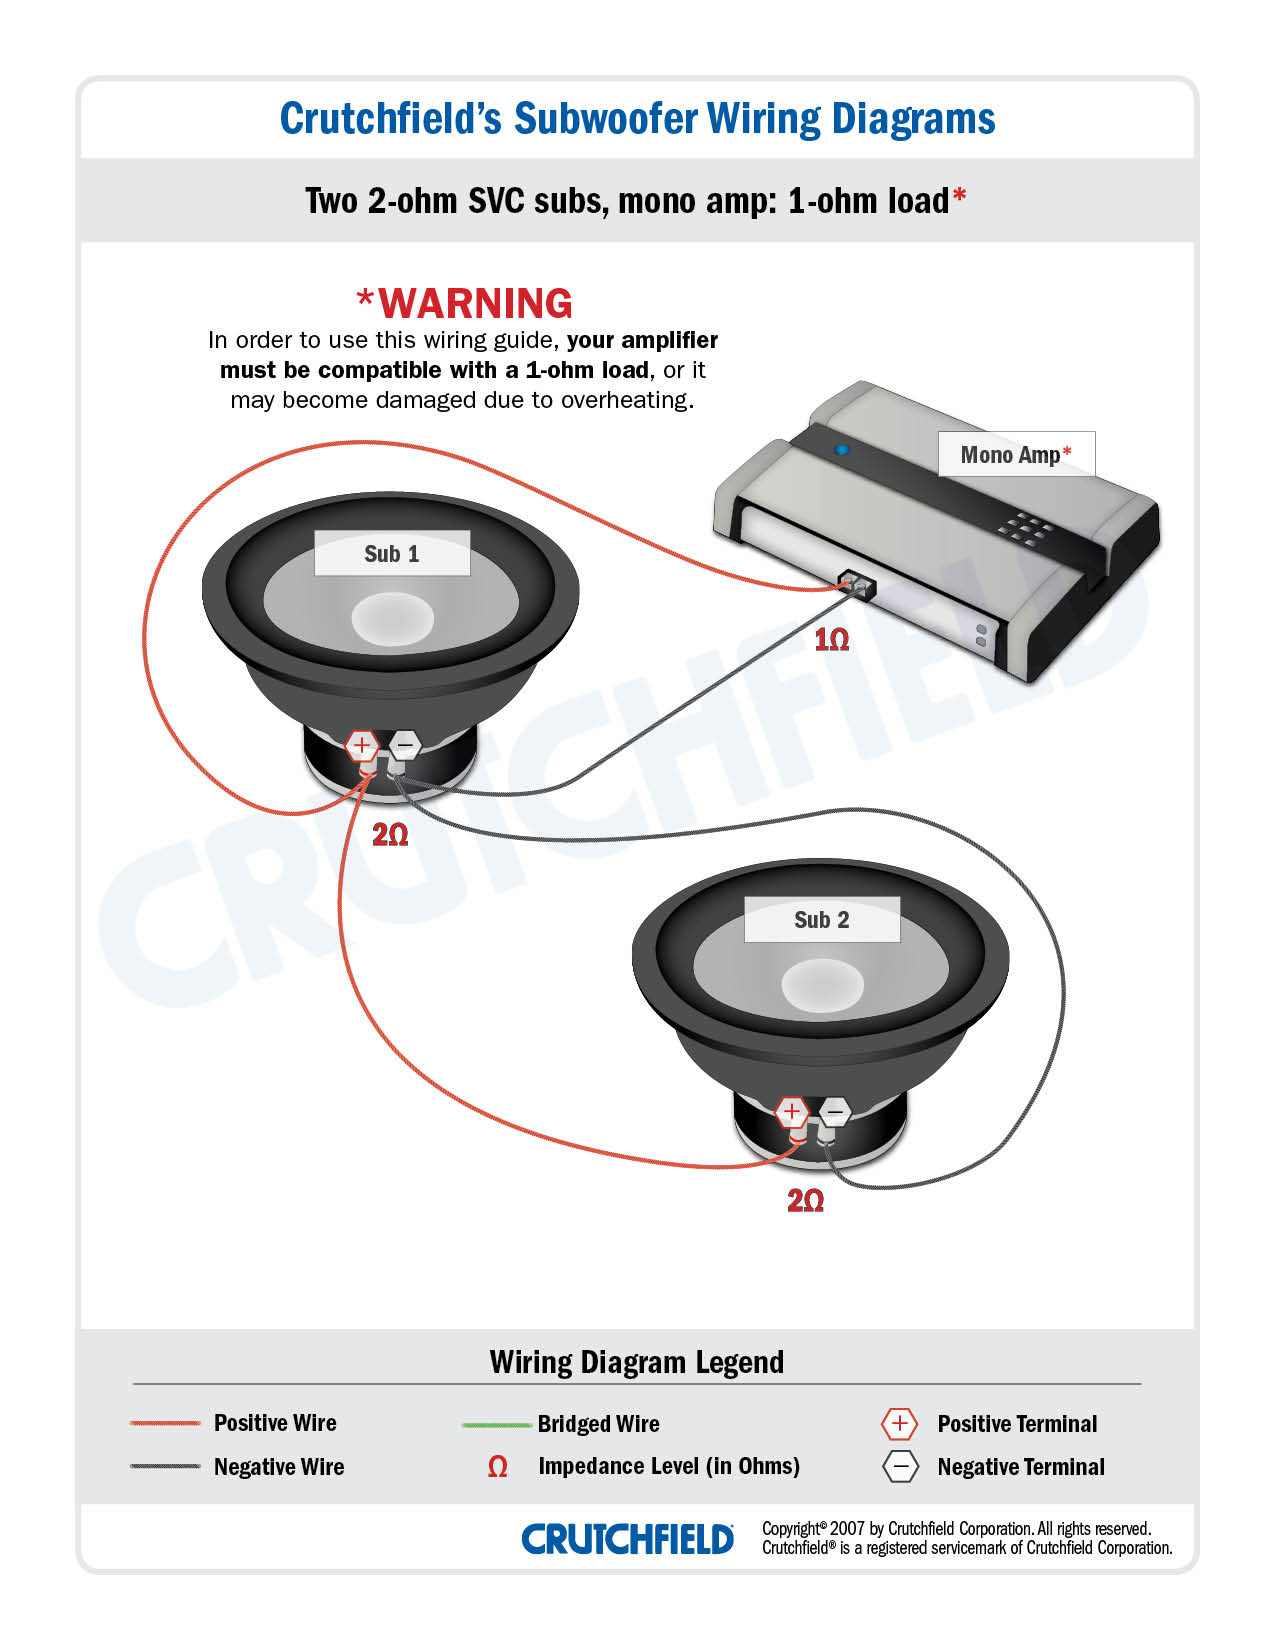 subwoofer wiring diagrams how to wire your subs rh crutchfield com crutchfield car stereo installation guide crutchfield car stereo installation guide